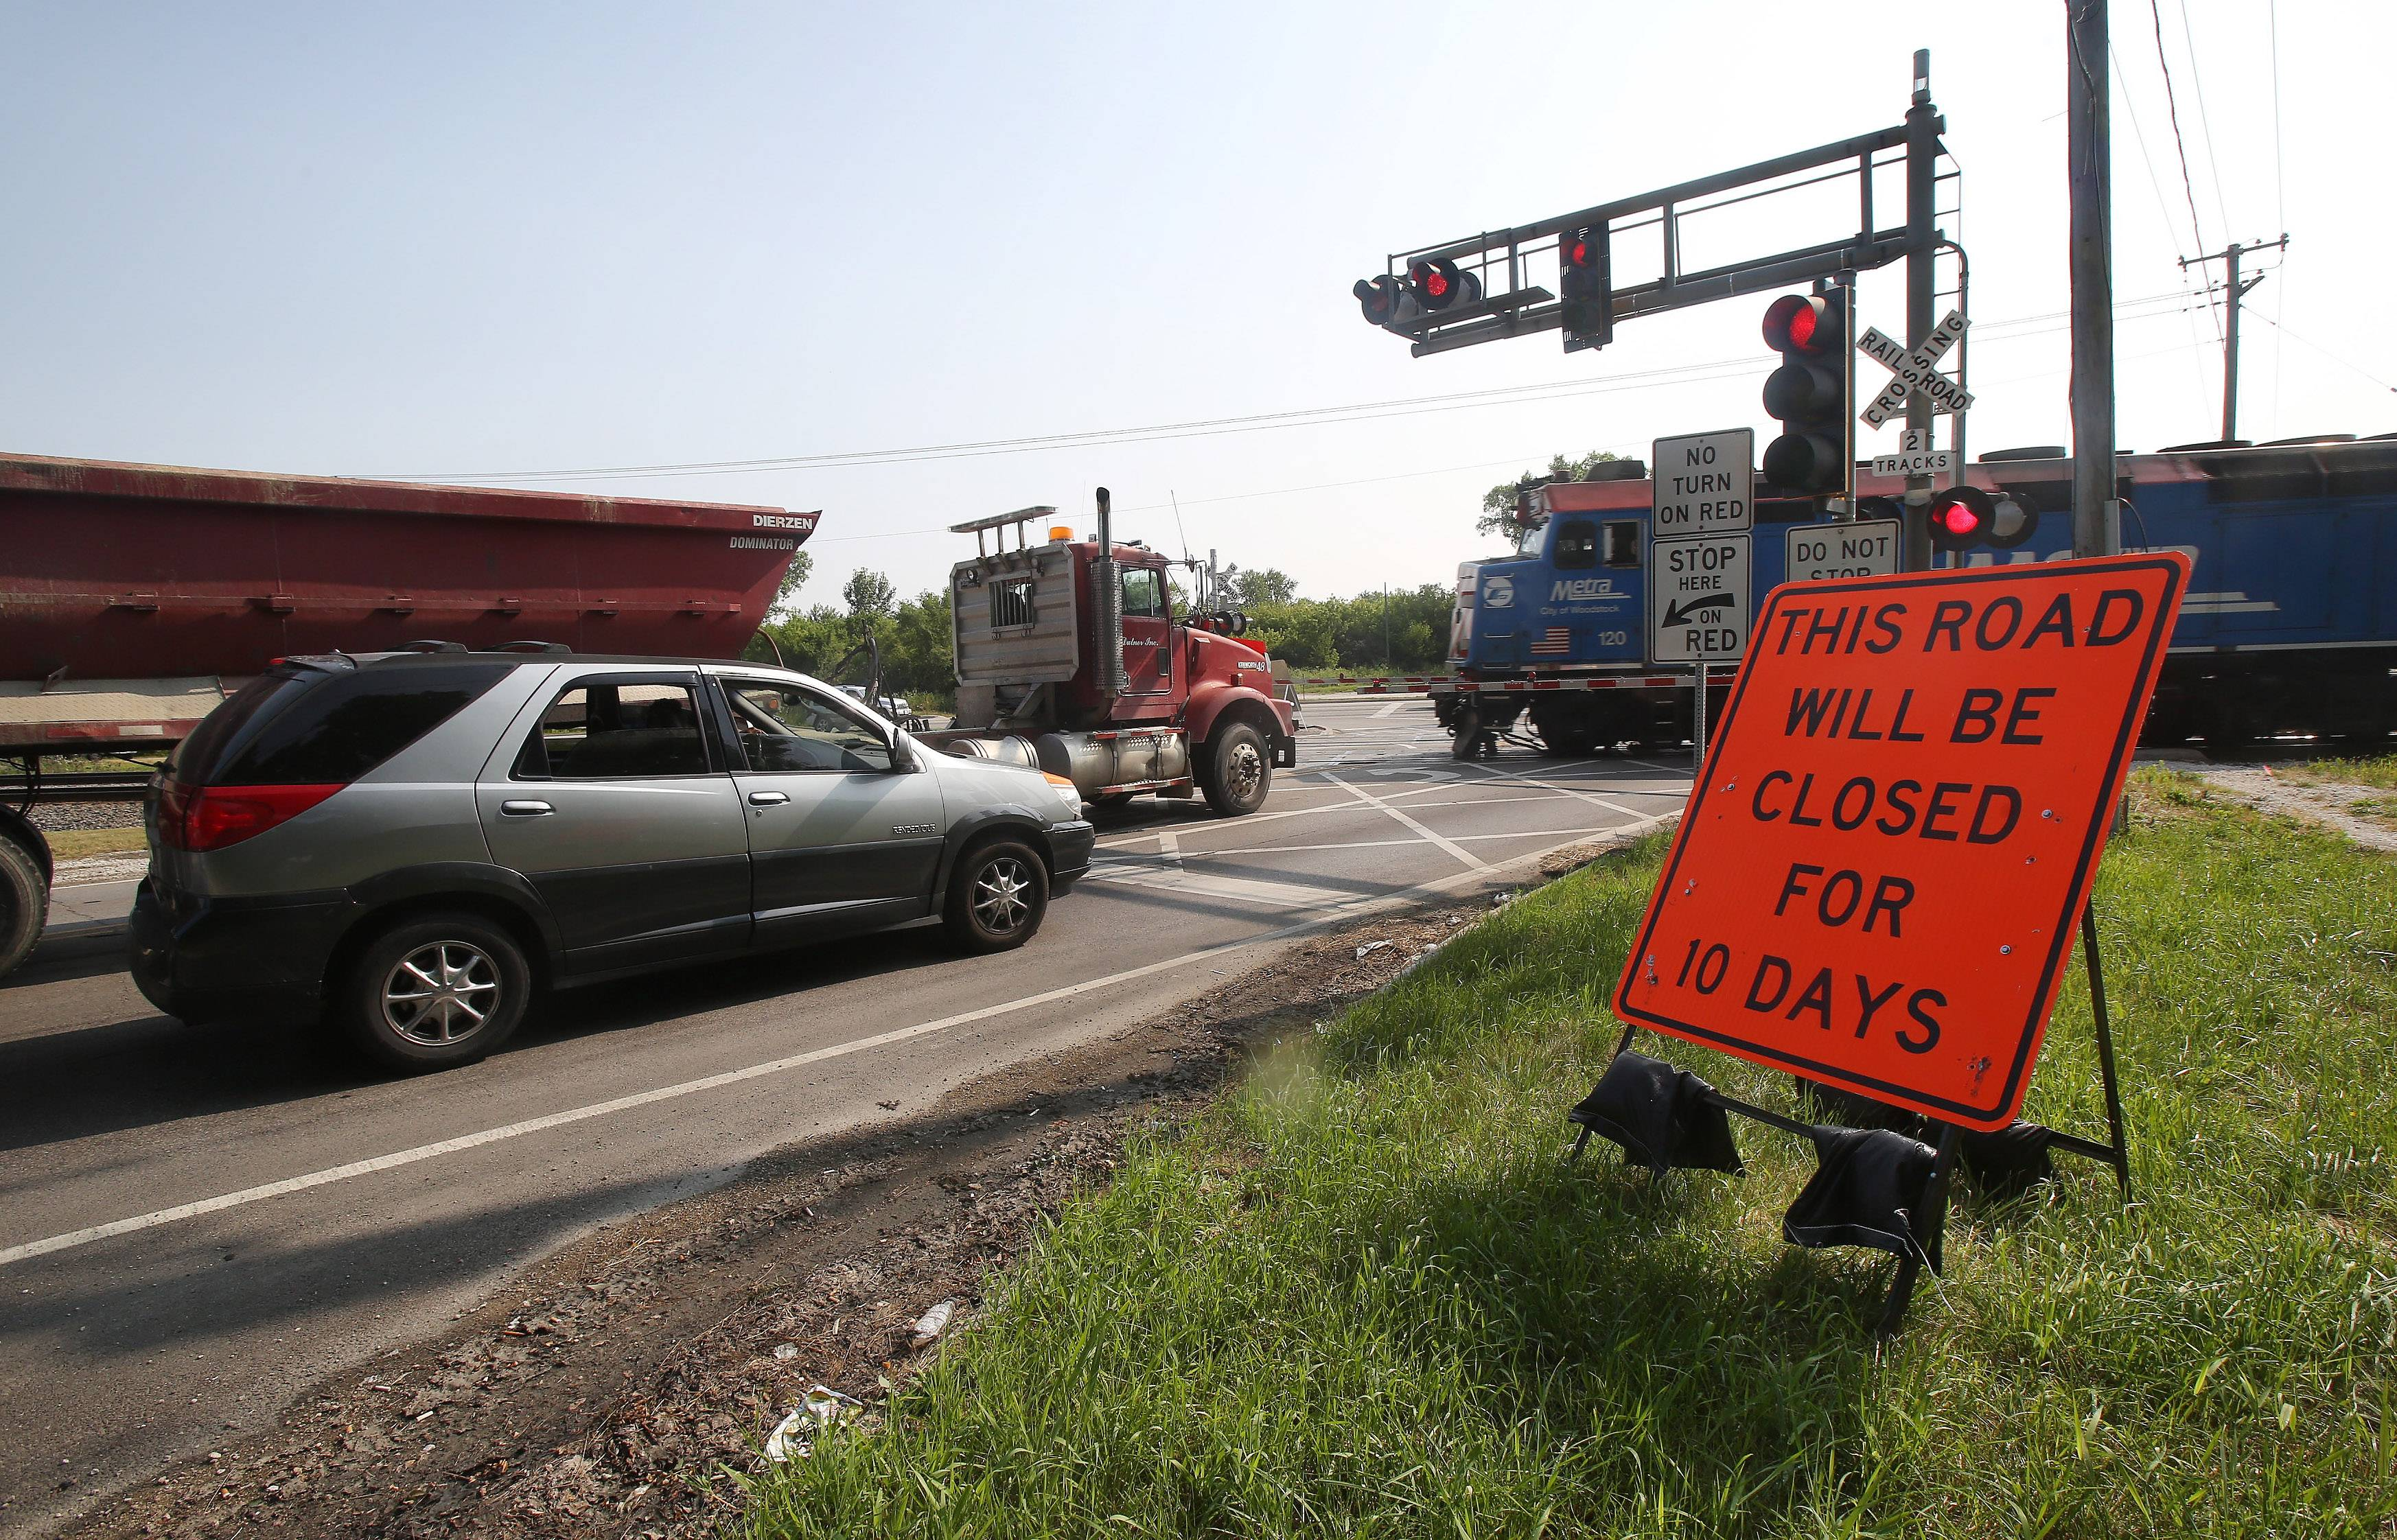 Route 120 west of Route 83 in Grayslake will be closed for 10 days beginning Monday for railroad crossing repairs.